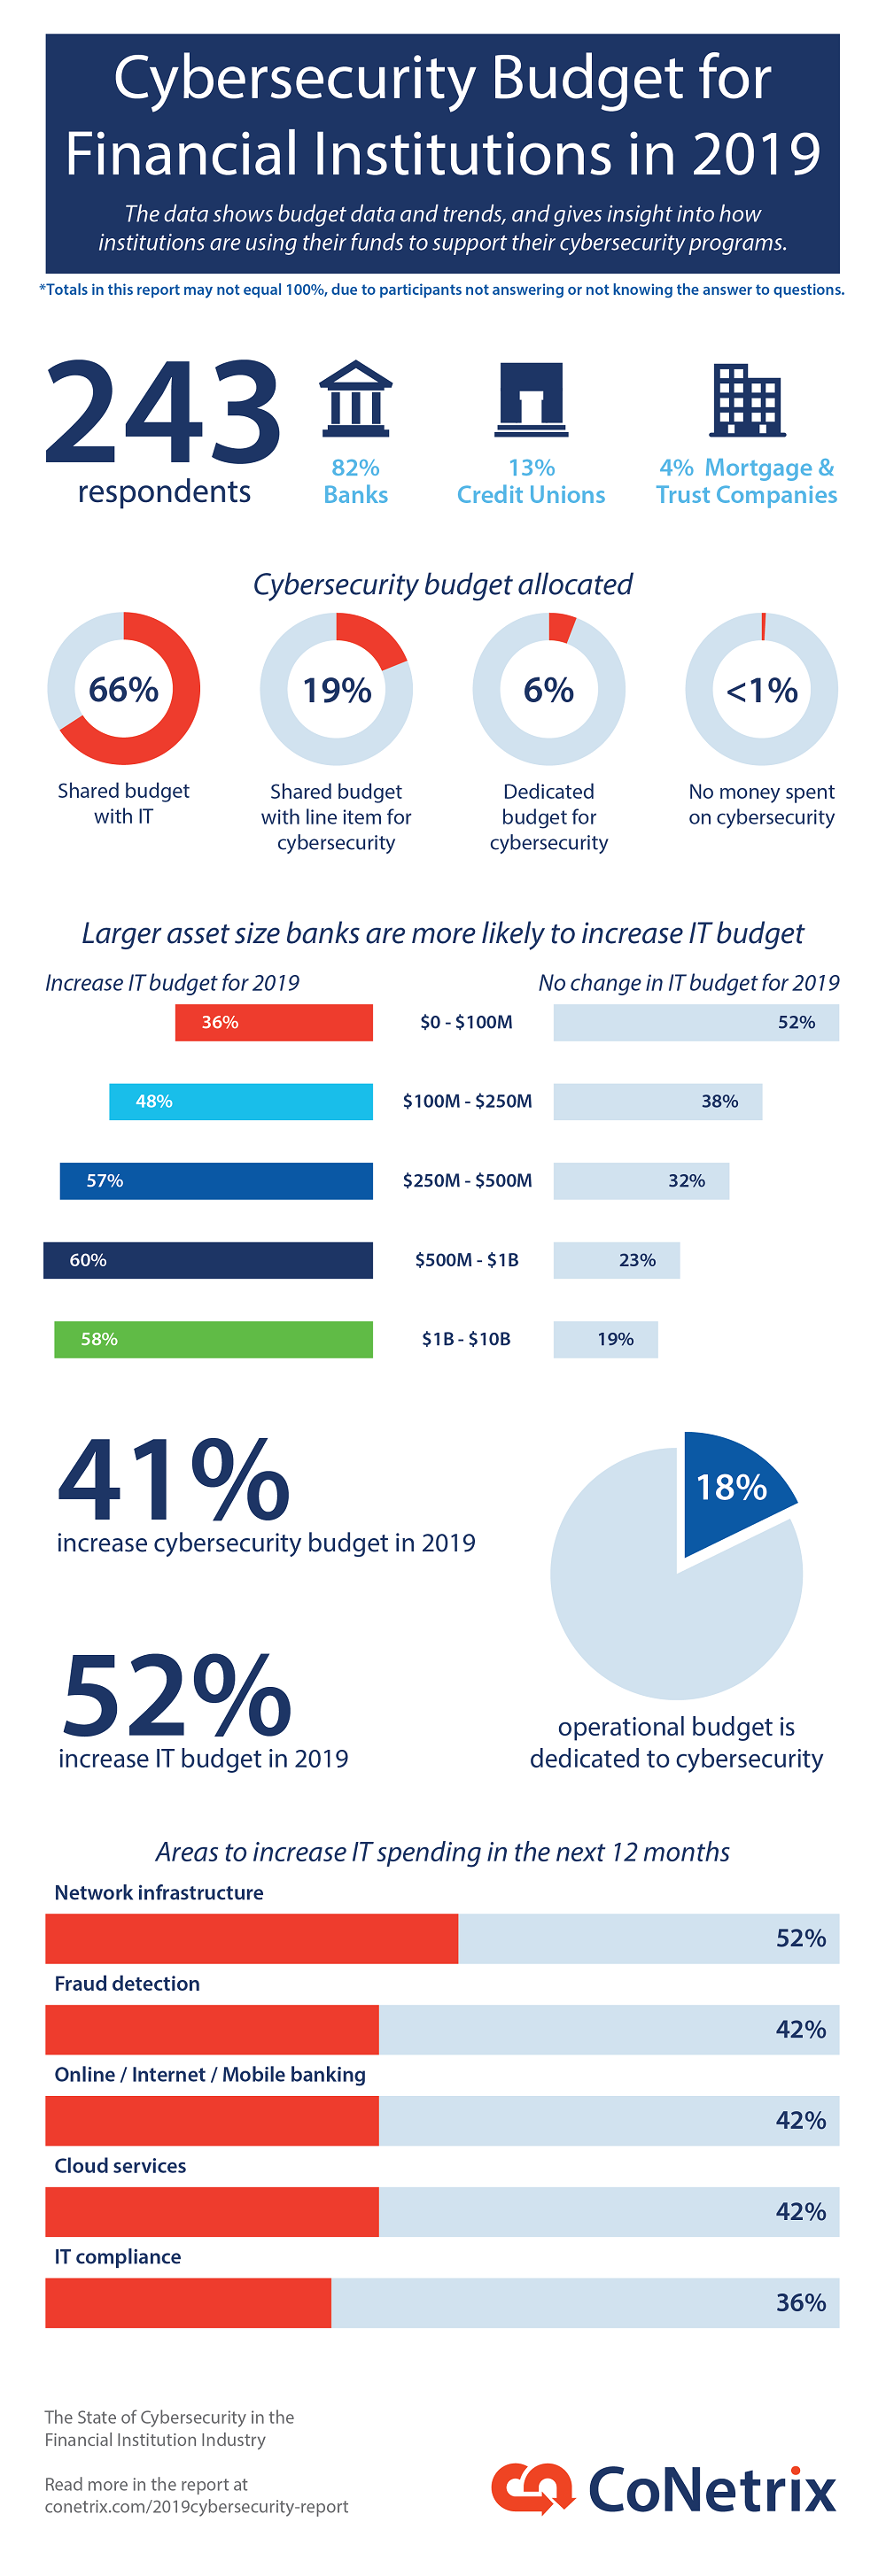 Cybersecurity Budget for Financial Institutions